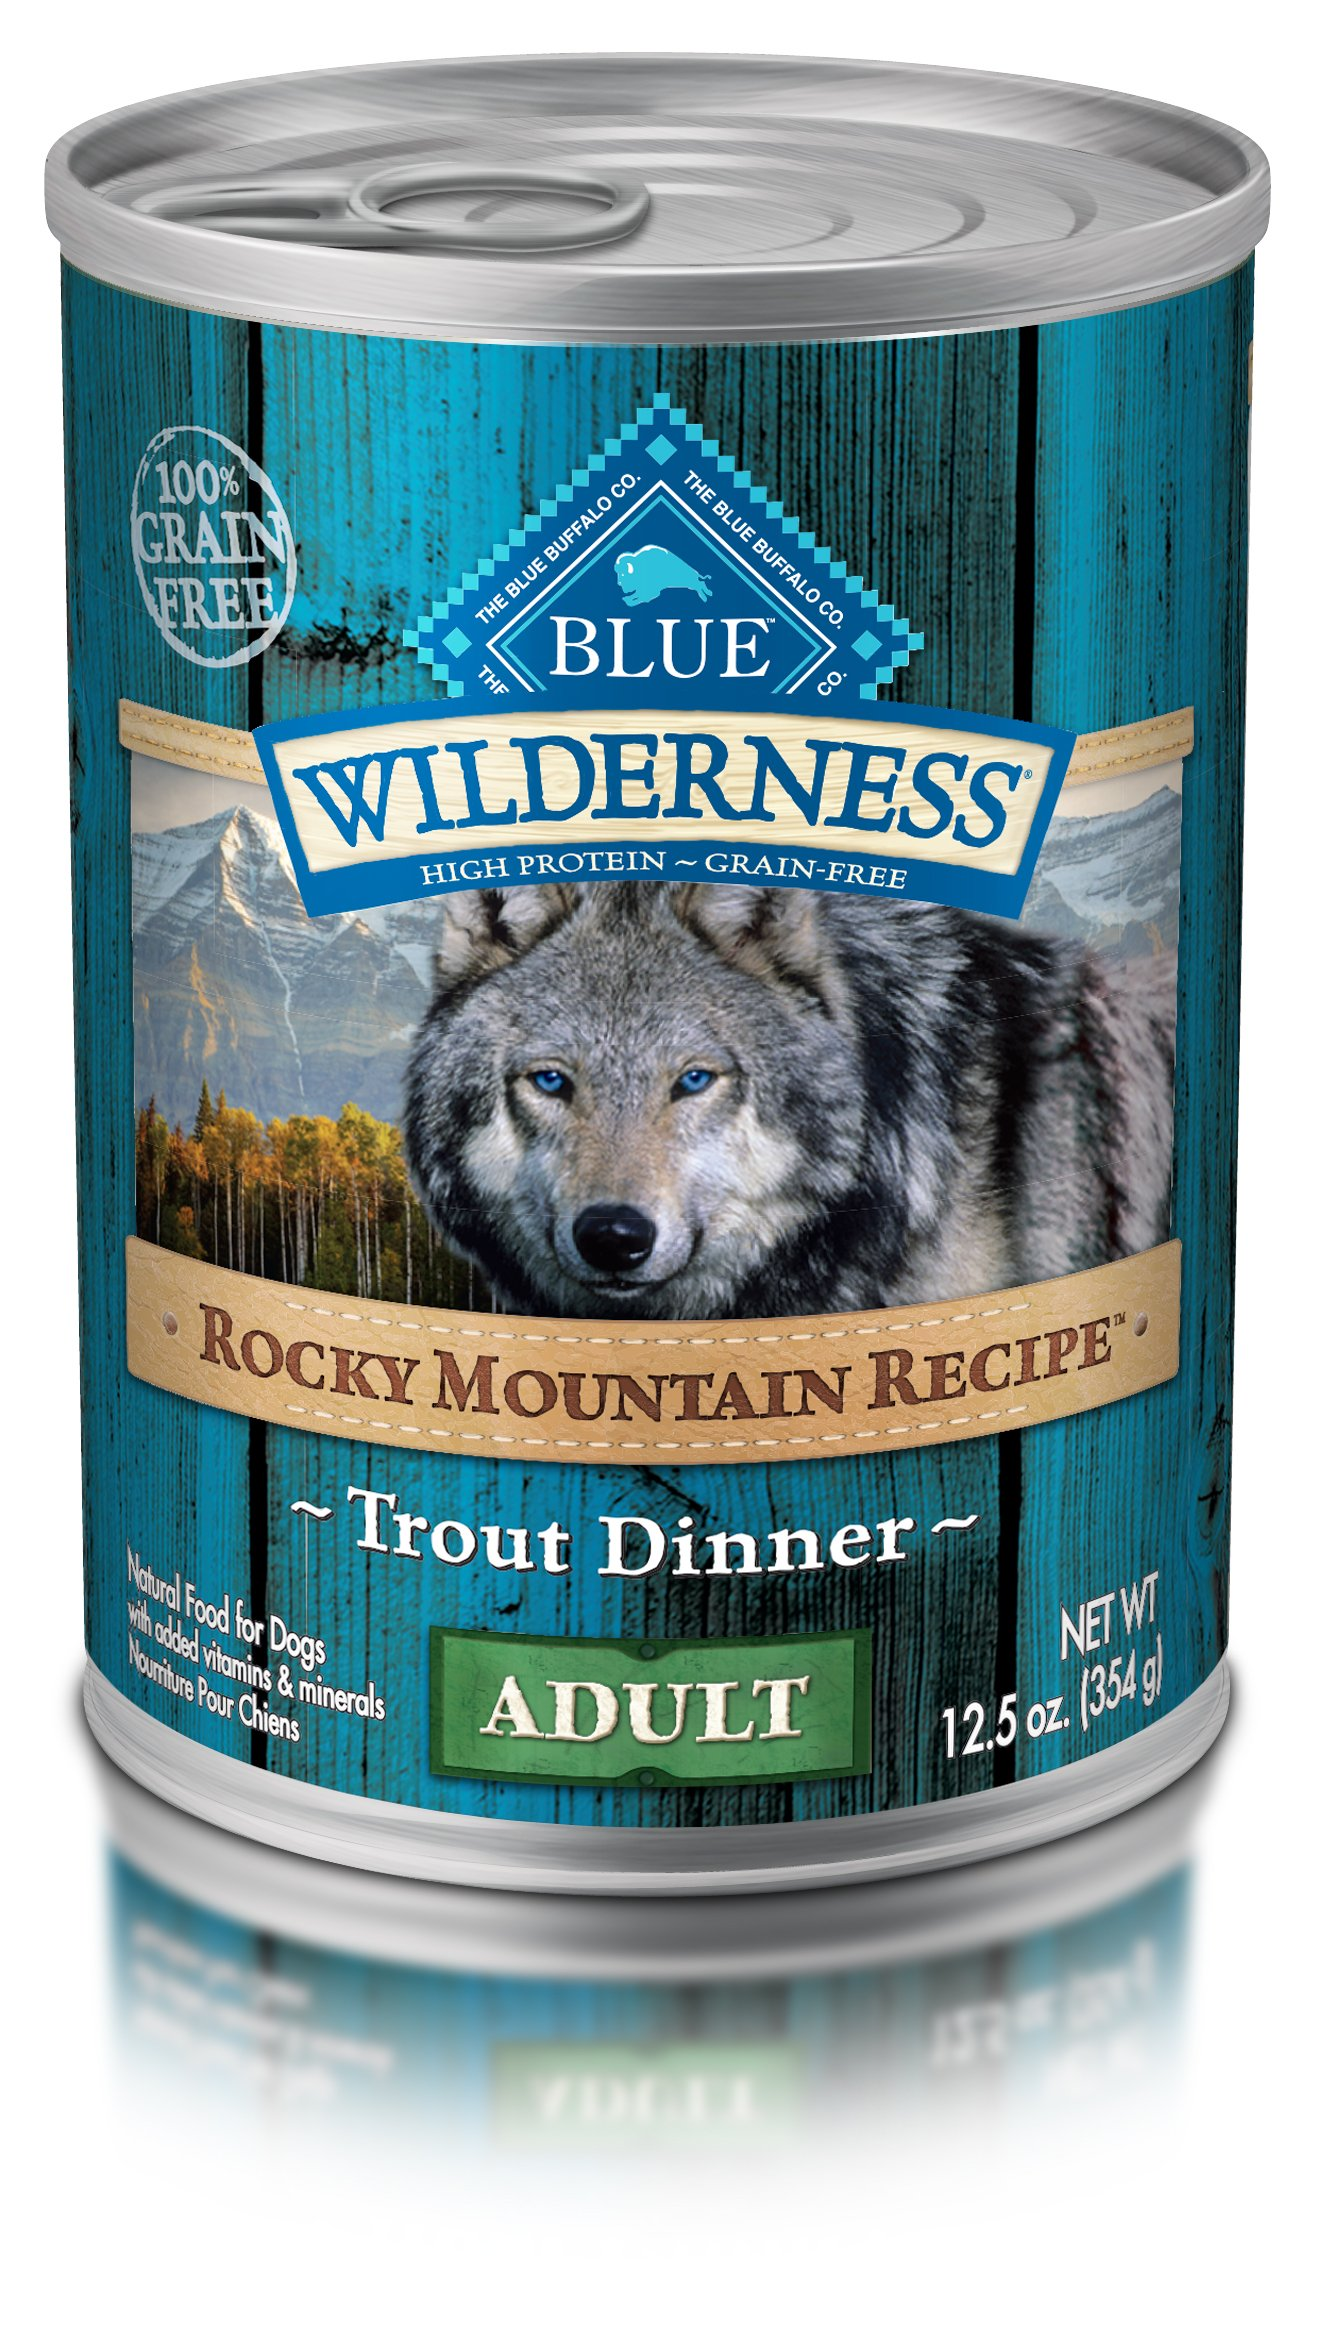 Blue Buffalo Wilderness Rocky Mountain Recipes Adult Trout - Grain Free 12.5 oz, Pack of 12 by BLUE Wilderness